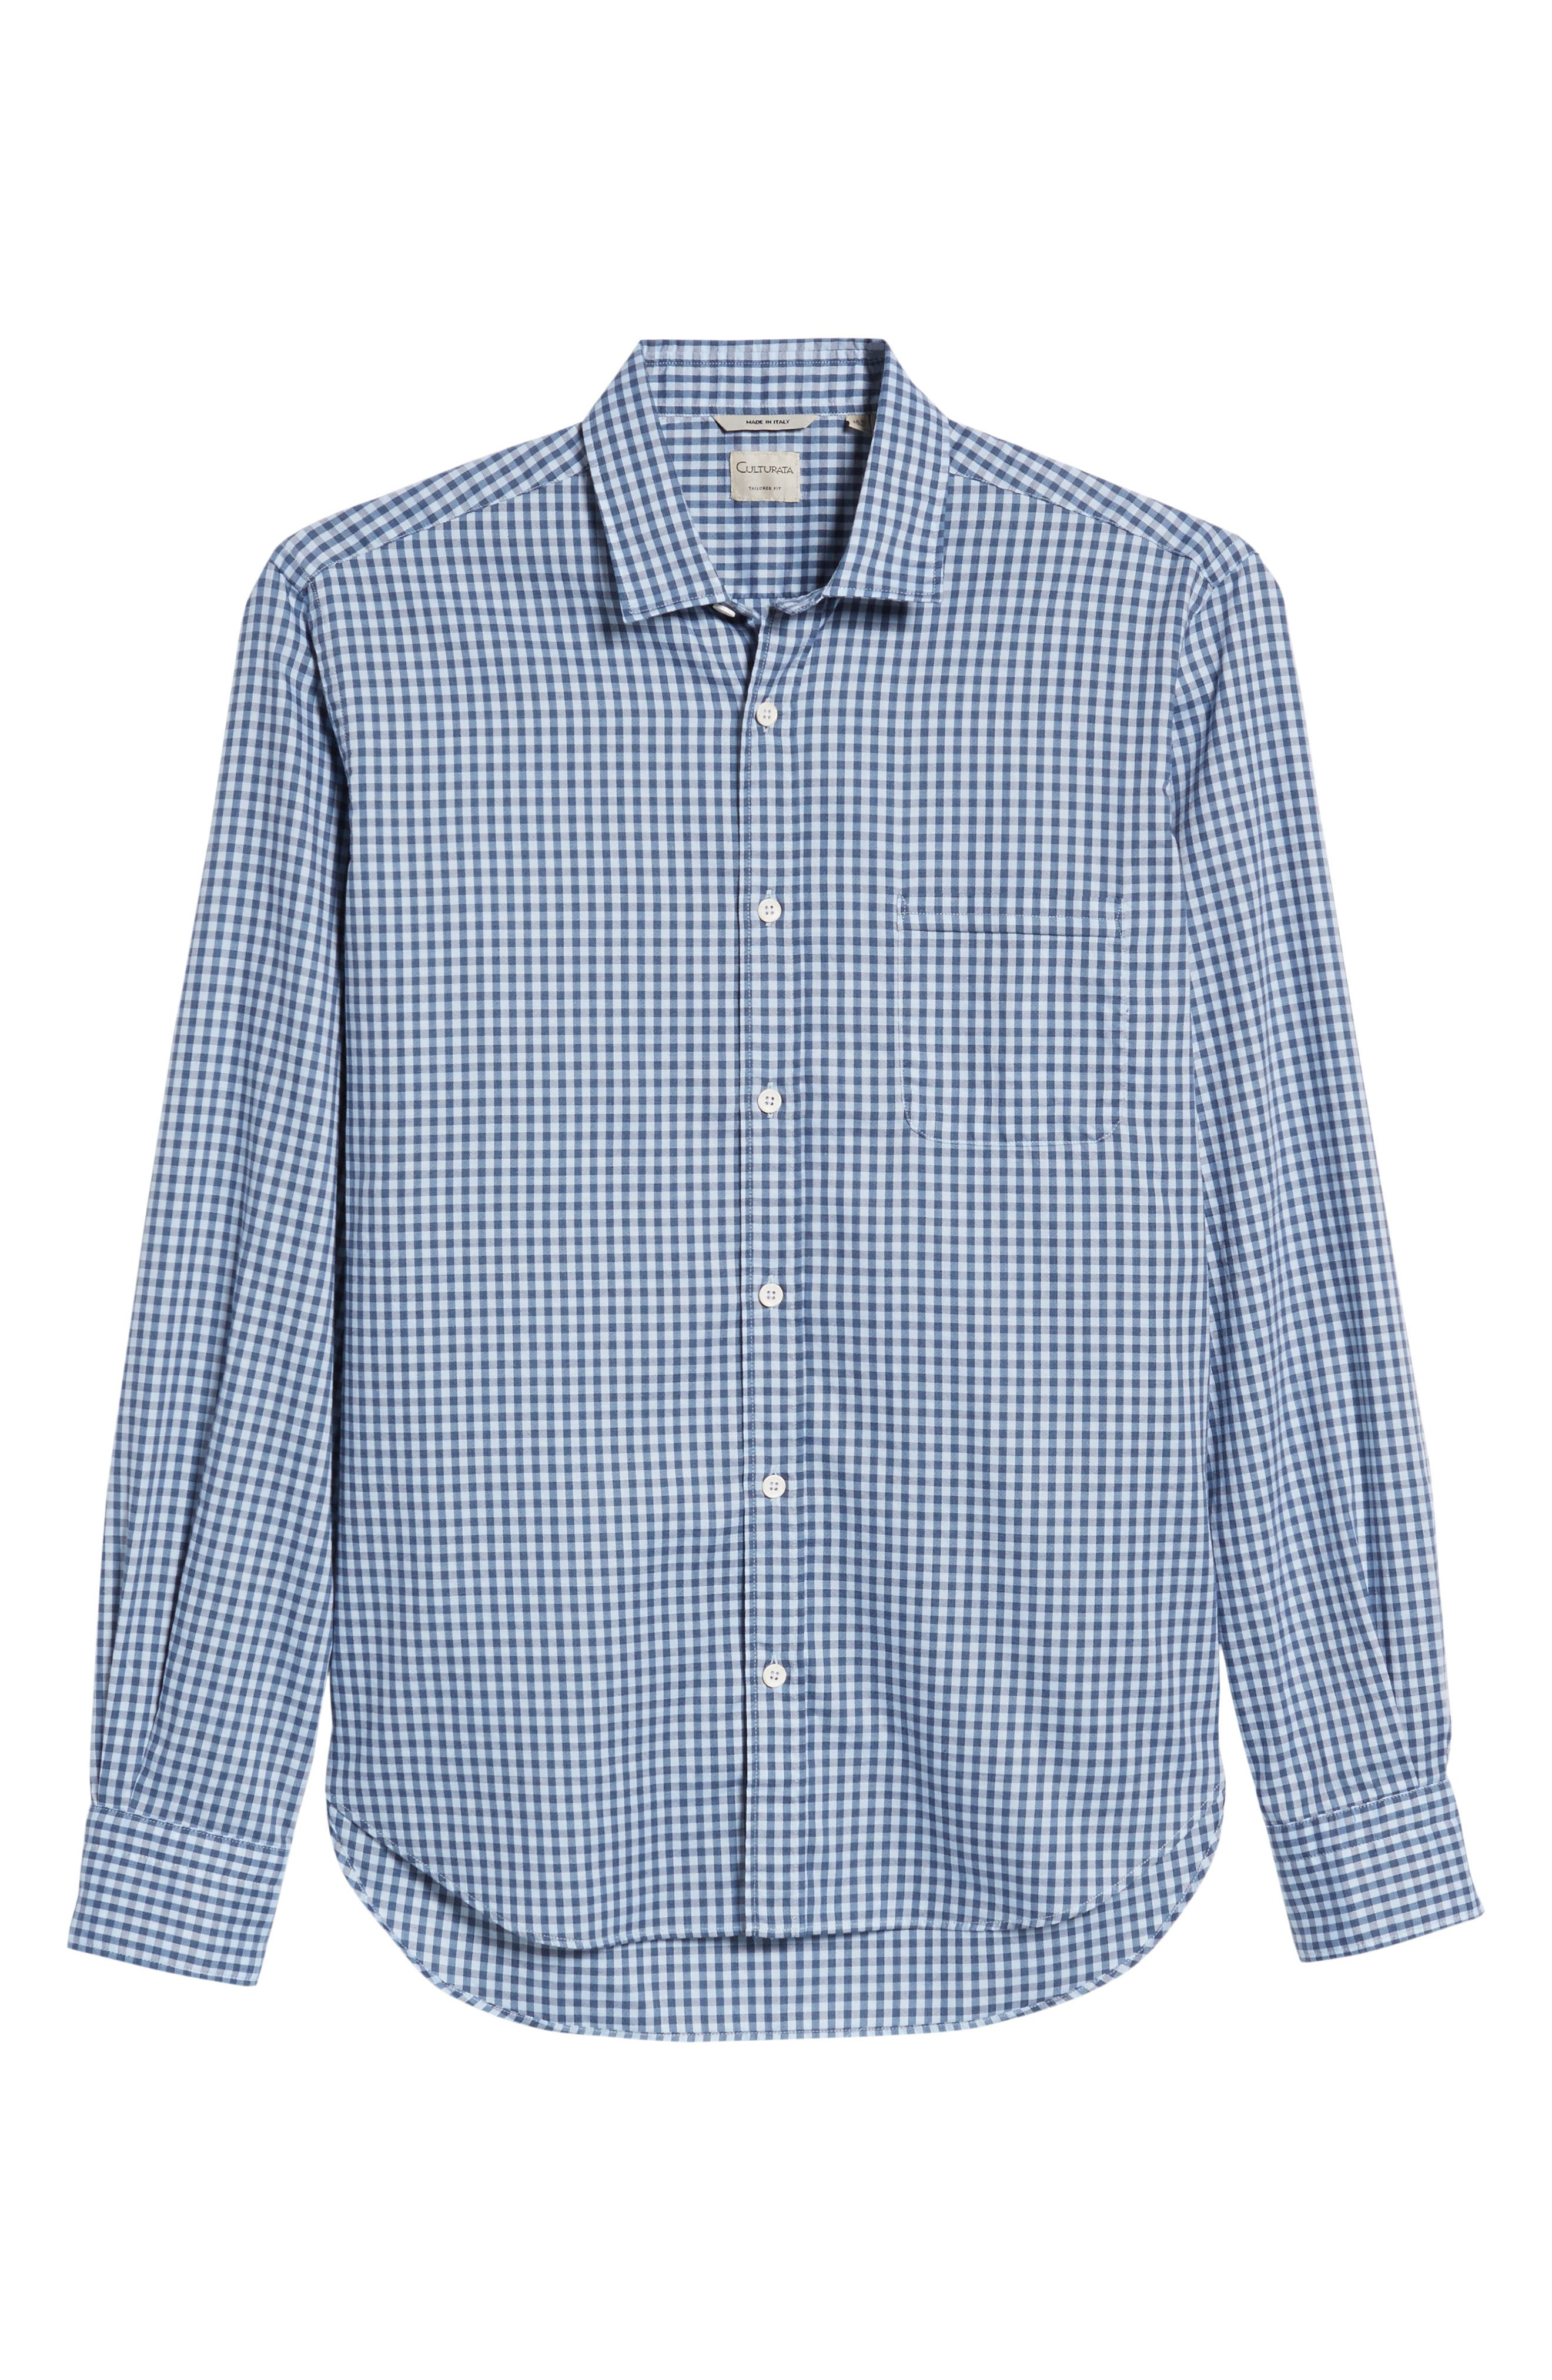 Tailored Fit Gingham Sport Shirt,                             Alternate thumbnail 6, color,                             400